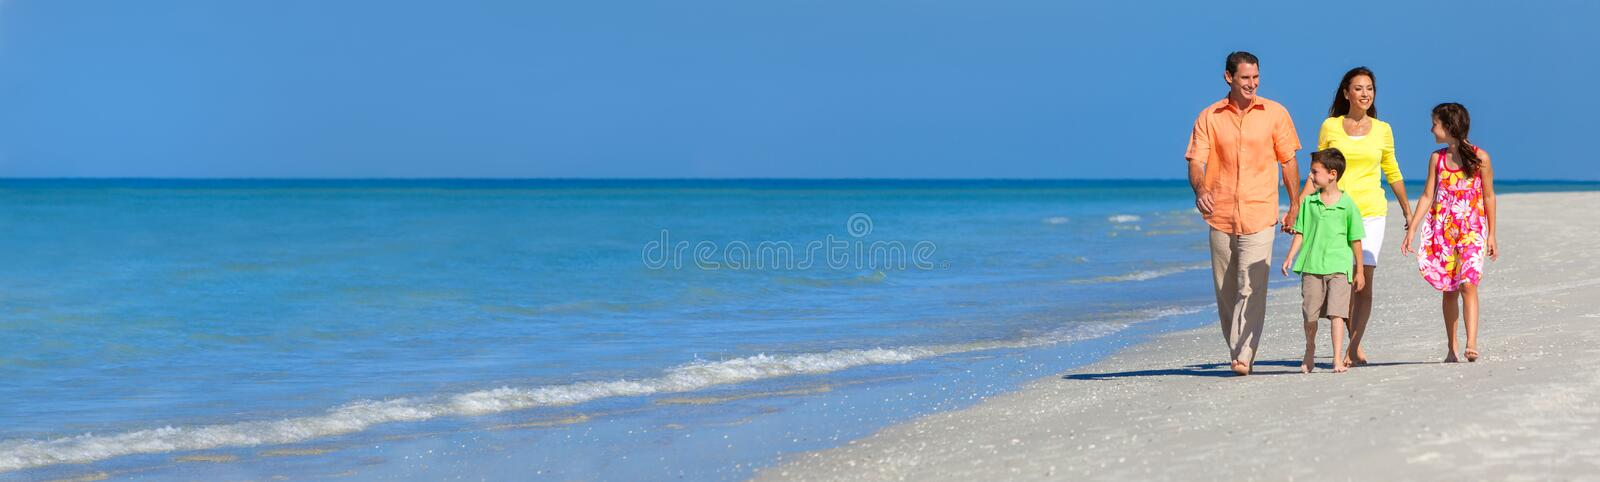 Web banner panoramic happy family of mother, father and two children, son and daughter, walking on a beach royalty free stock photos